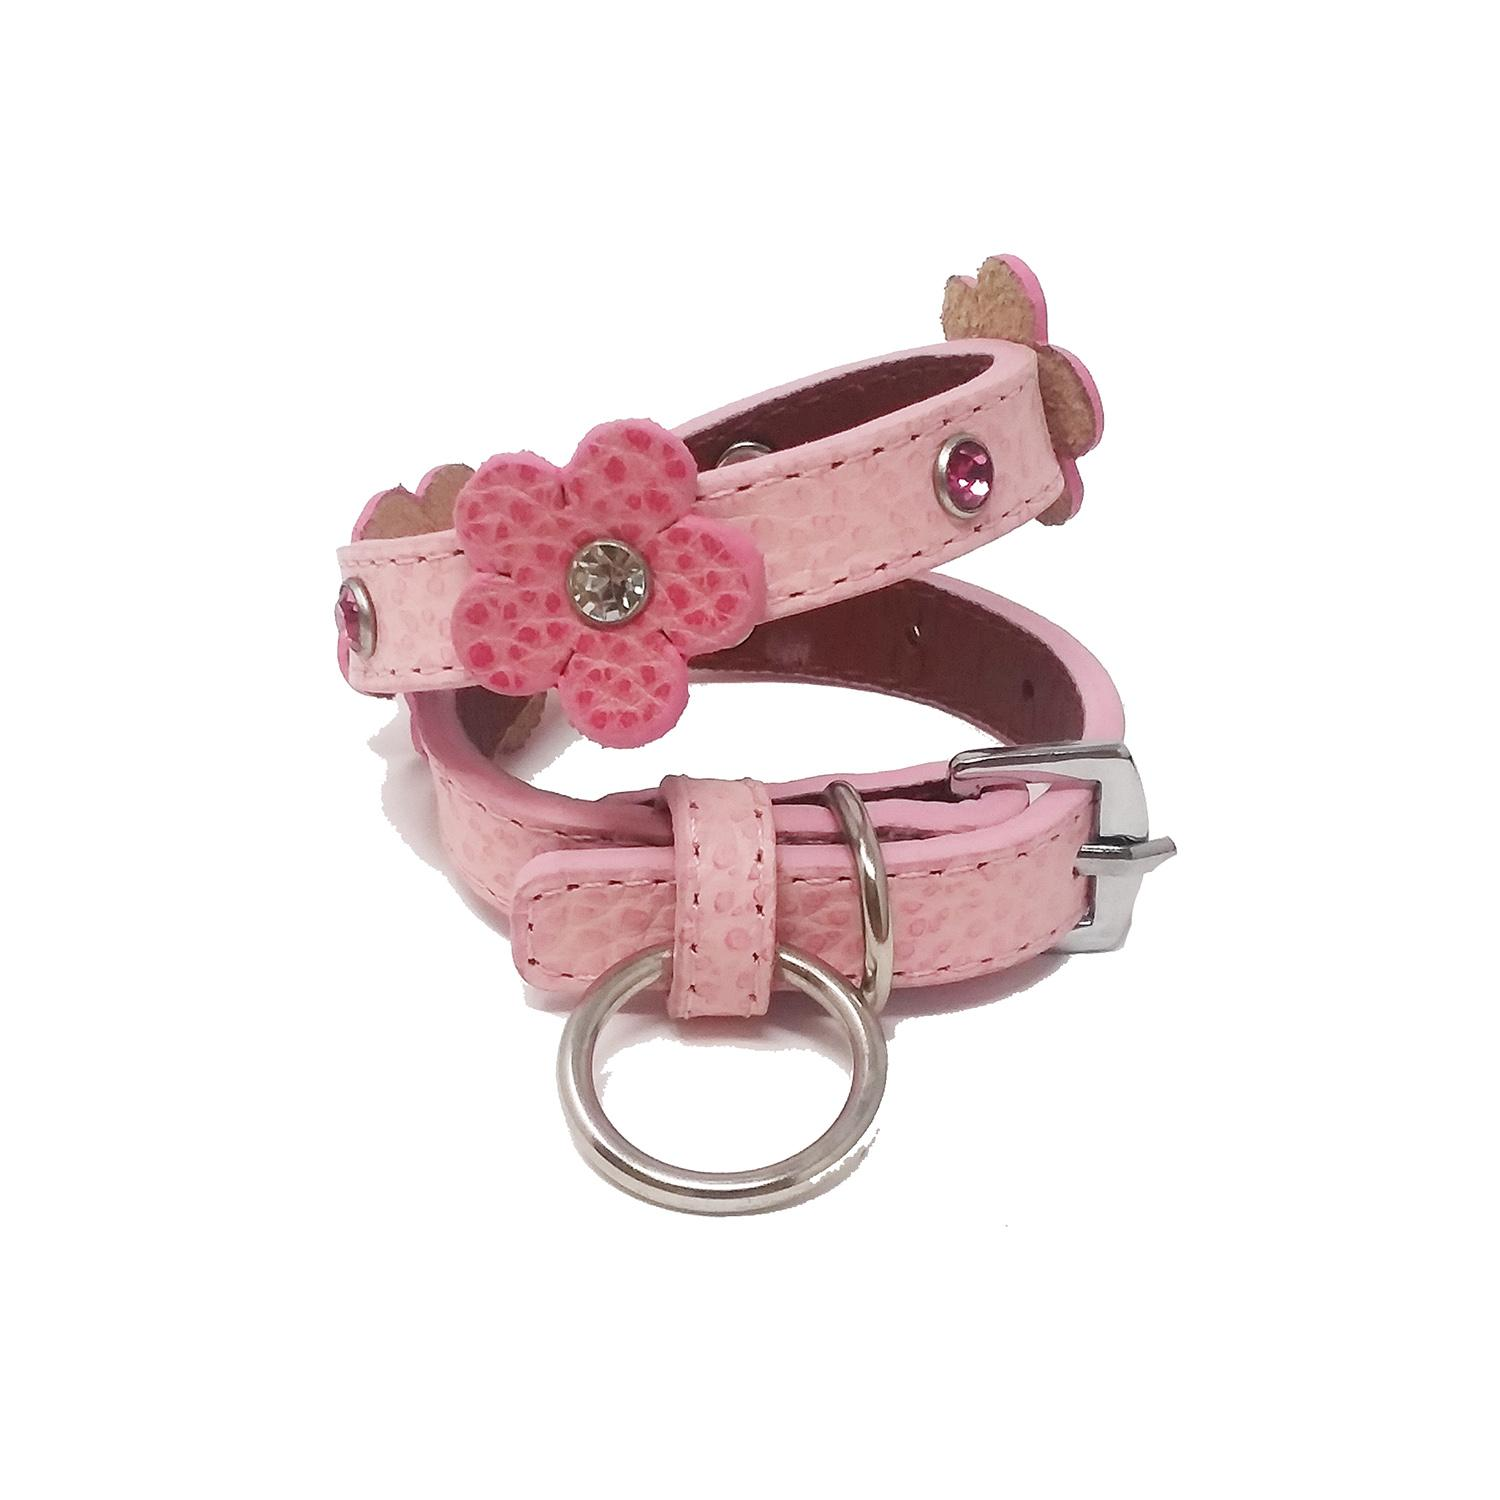 Flower and Gem Dog Collar by Cha Cha Couture - Pink